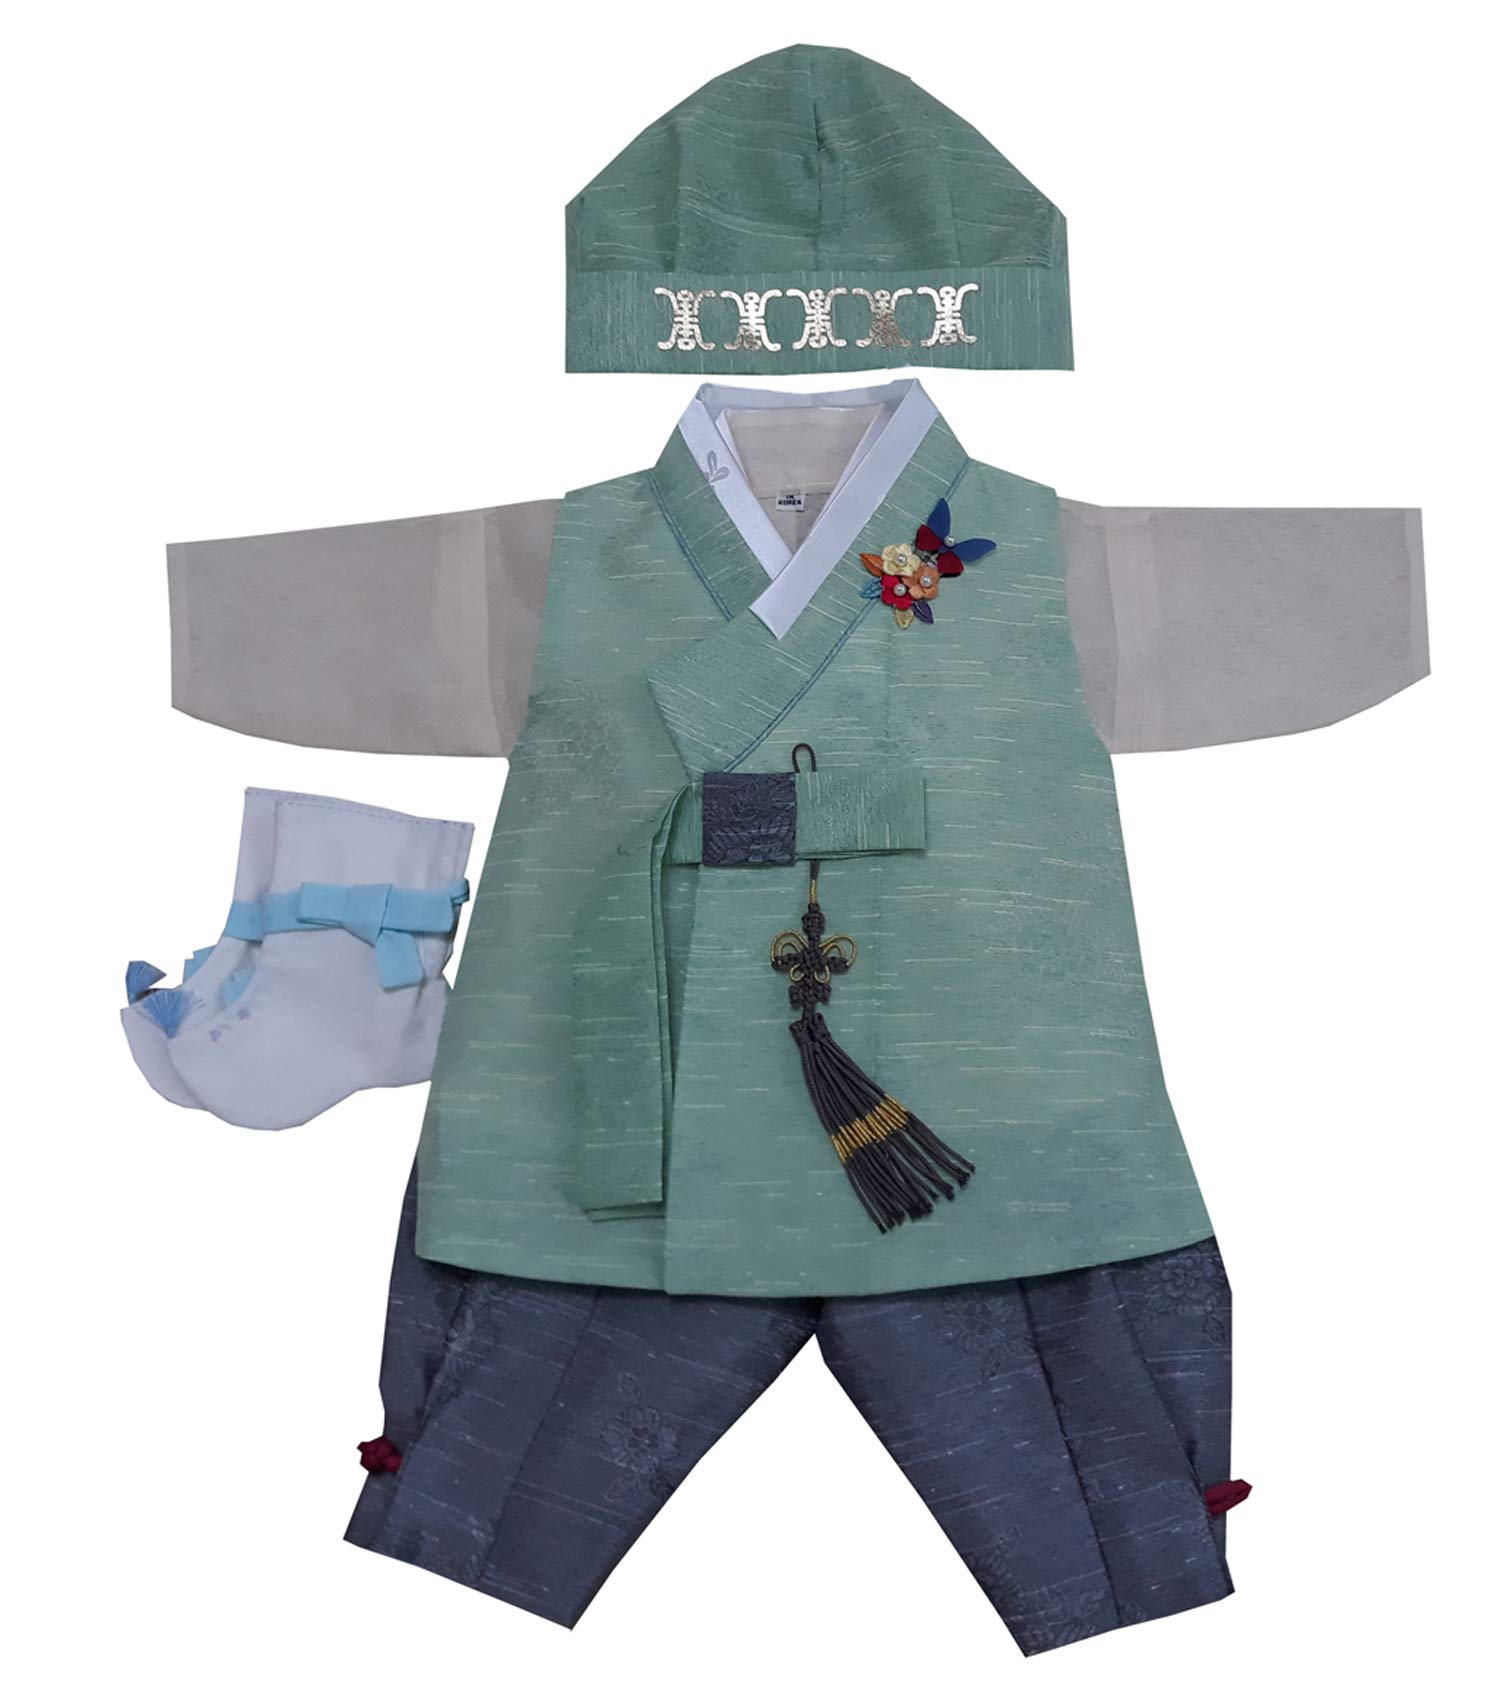 100 Day Birth Korea Baby Boy Hanbok Traditional Dress Outfits Celebration Party Green Set by hanbok store